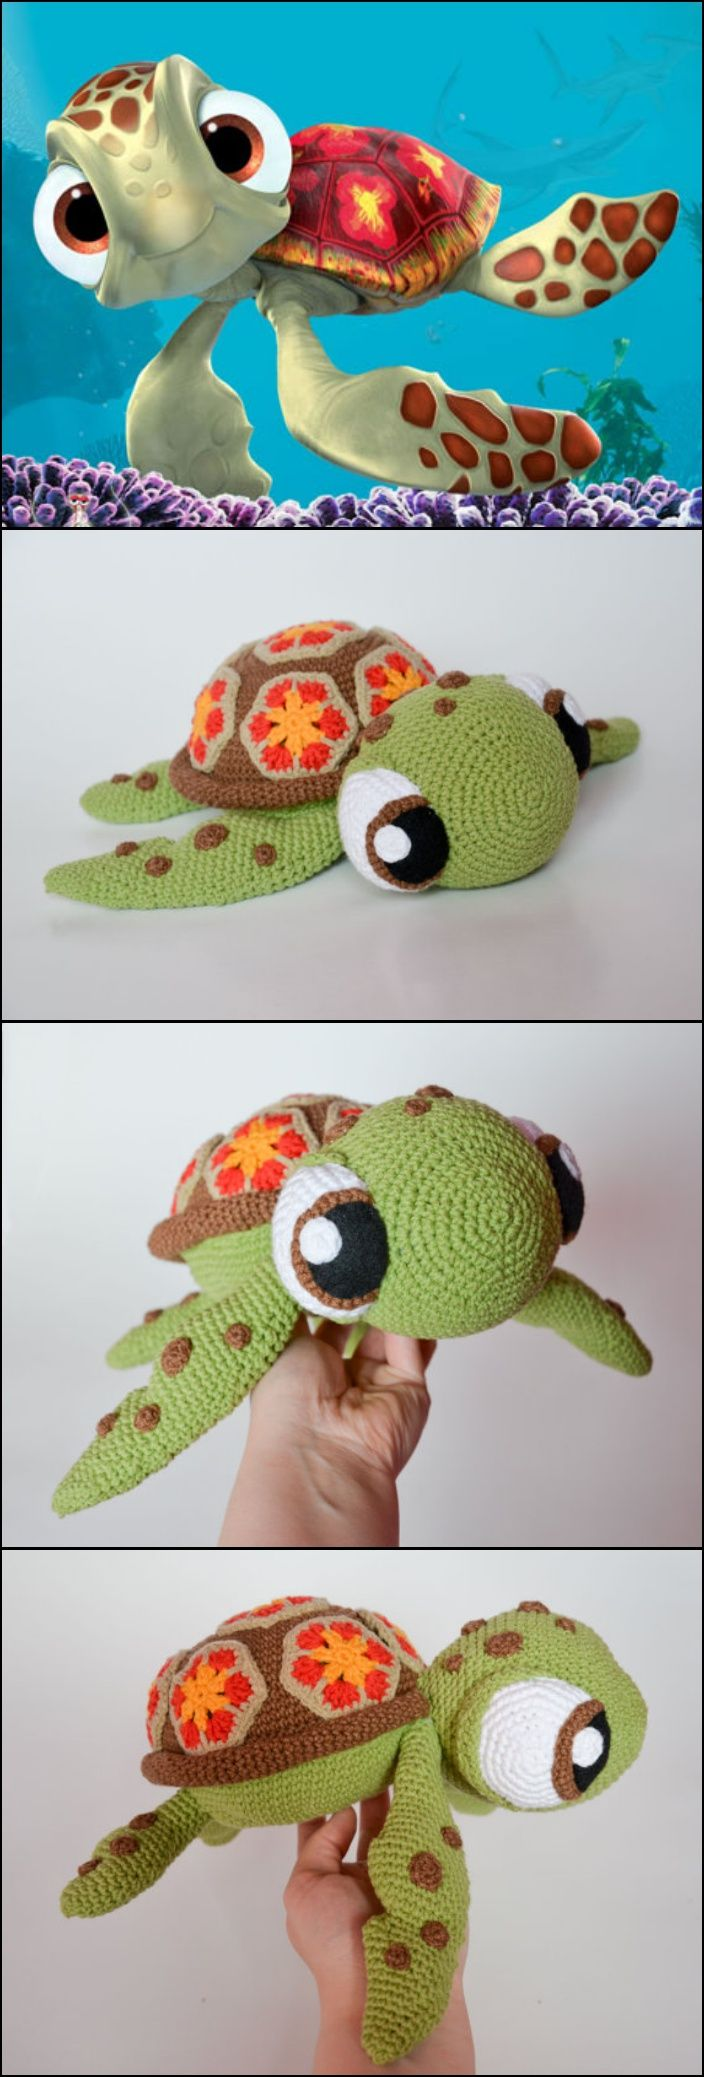 Finding Dory Crochet Patterns - Page 3 of 3 -